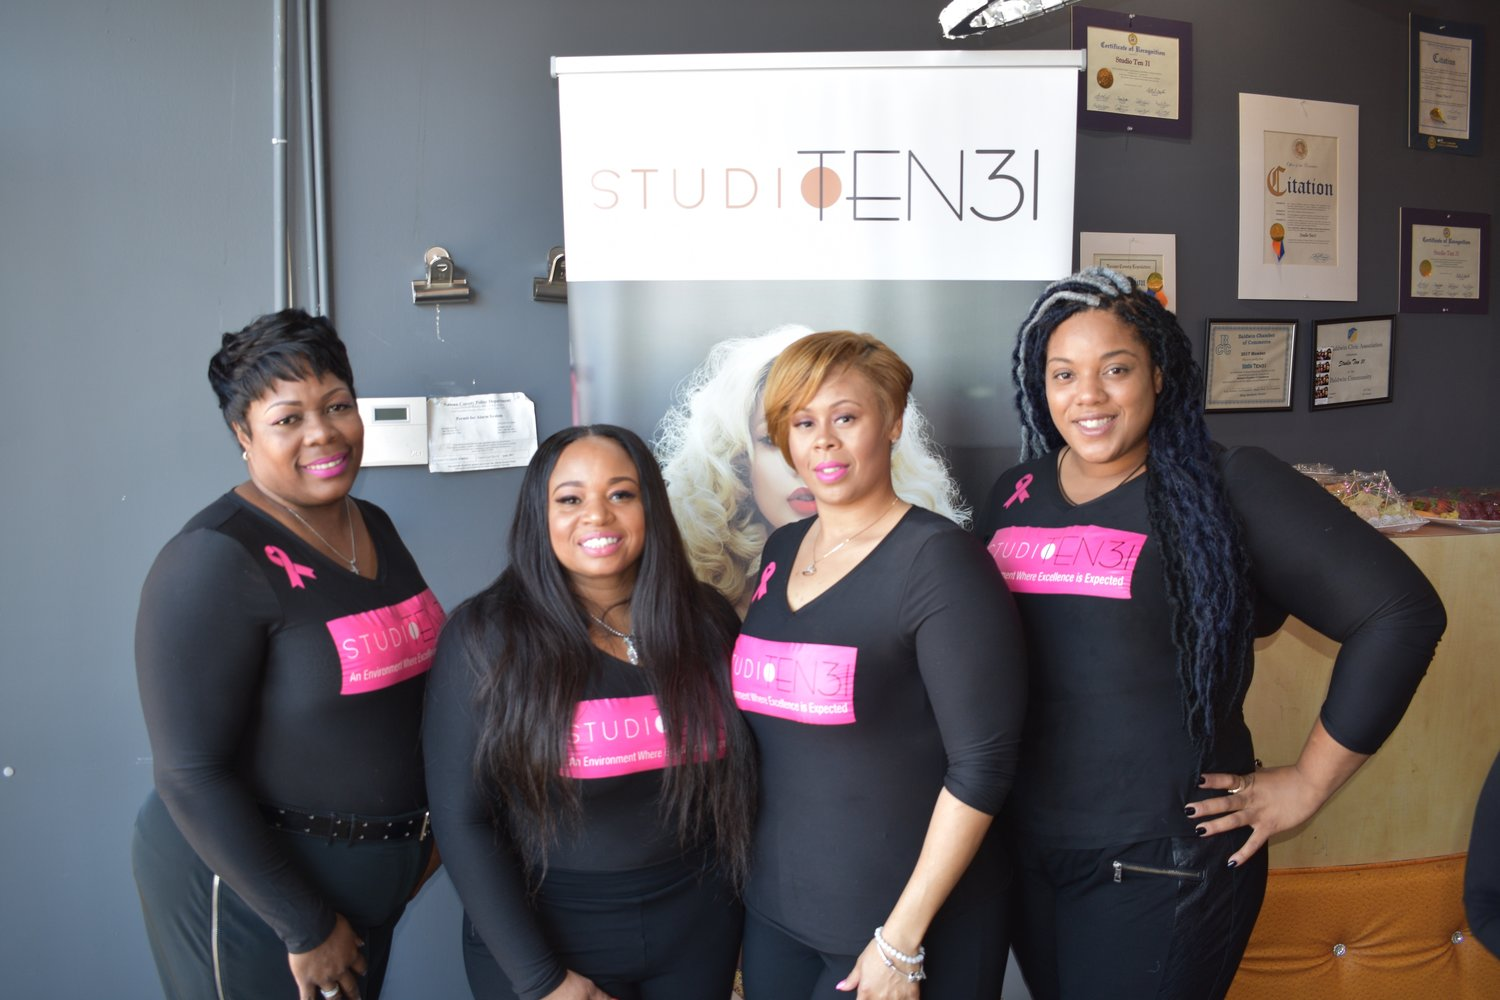 The hair stylists of Studio Ten31 in Baldwin provided a day of beauty for breast cancer survivors. Past clients of the salon have died from the disease.